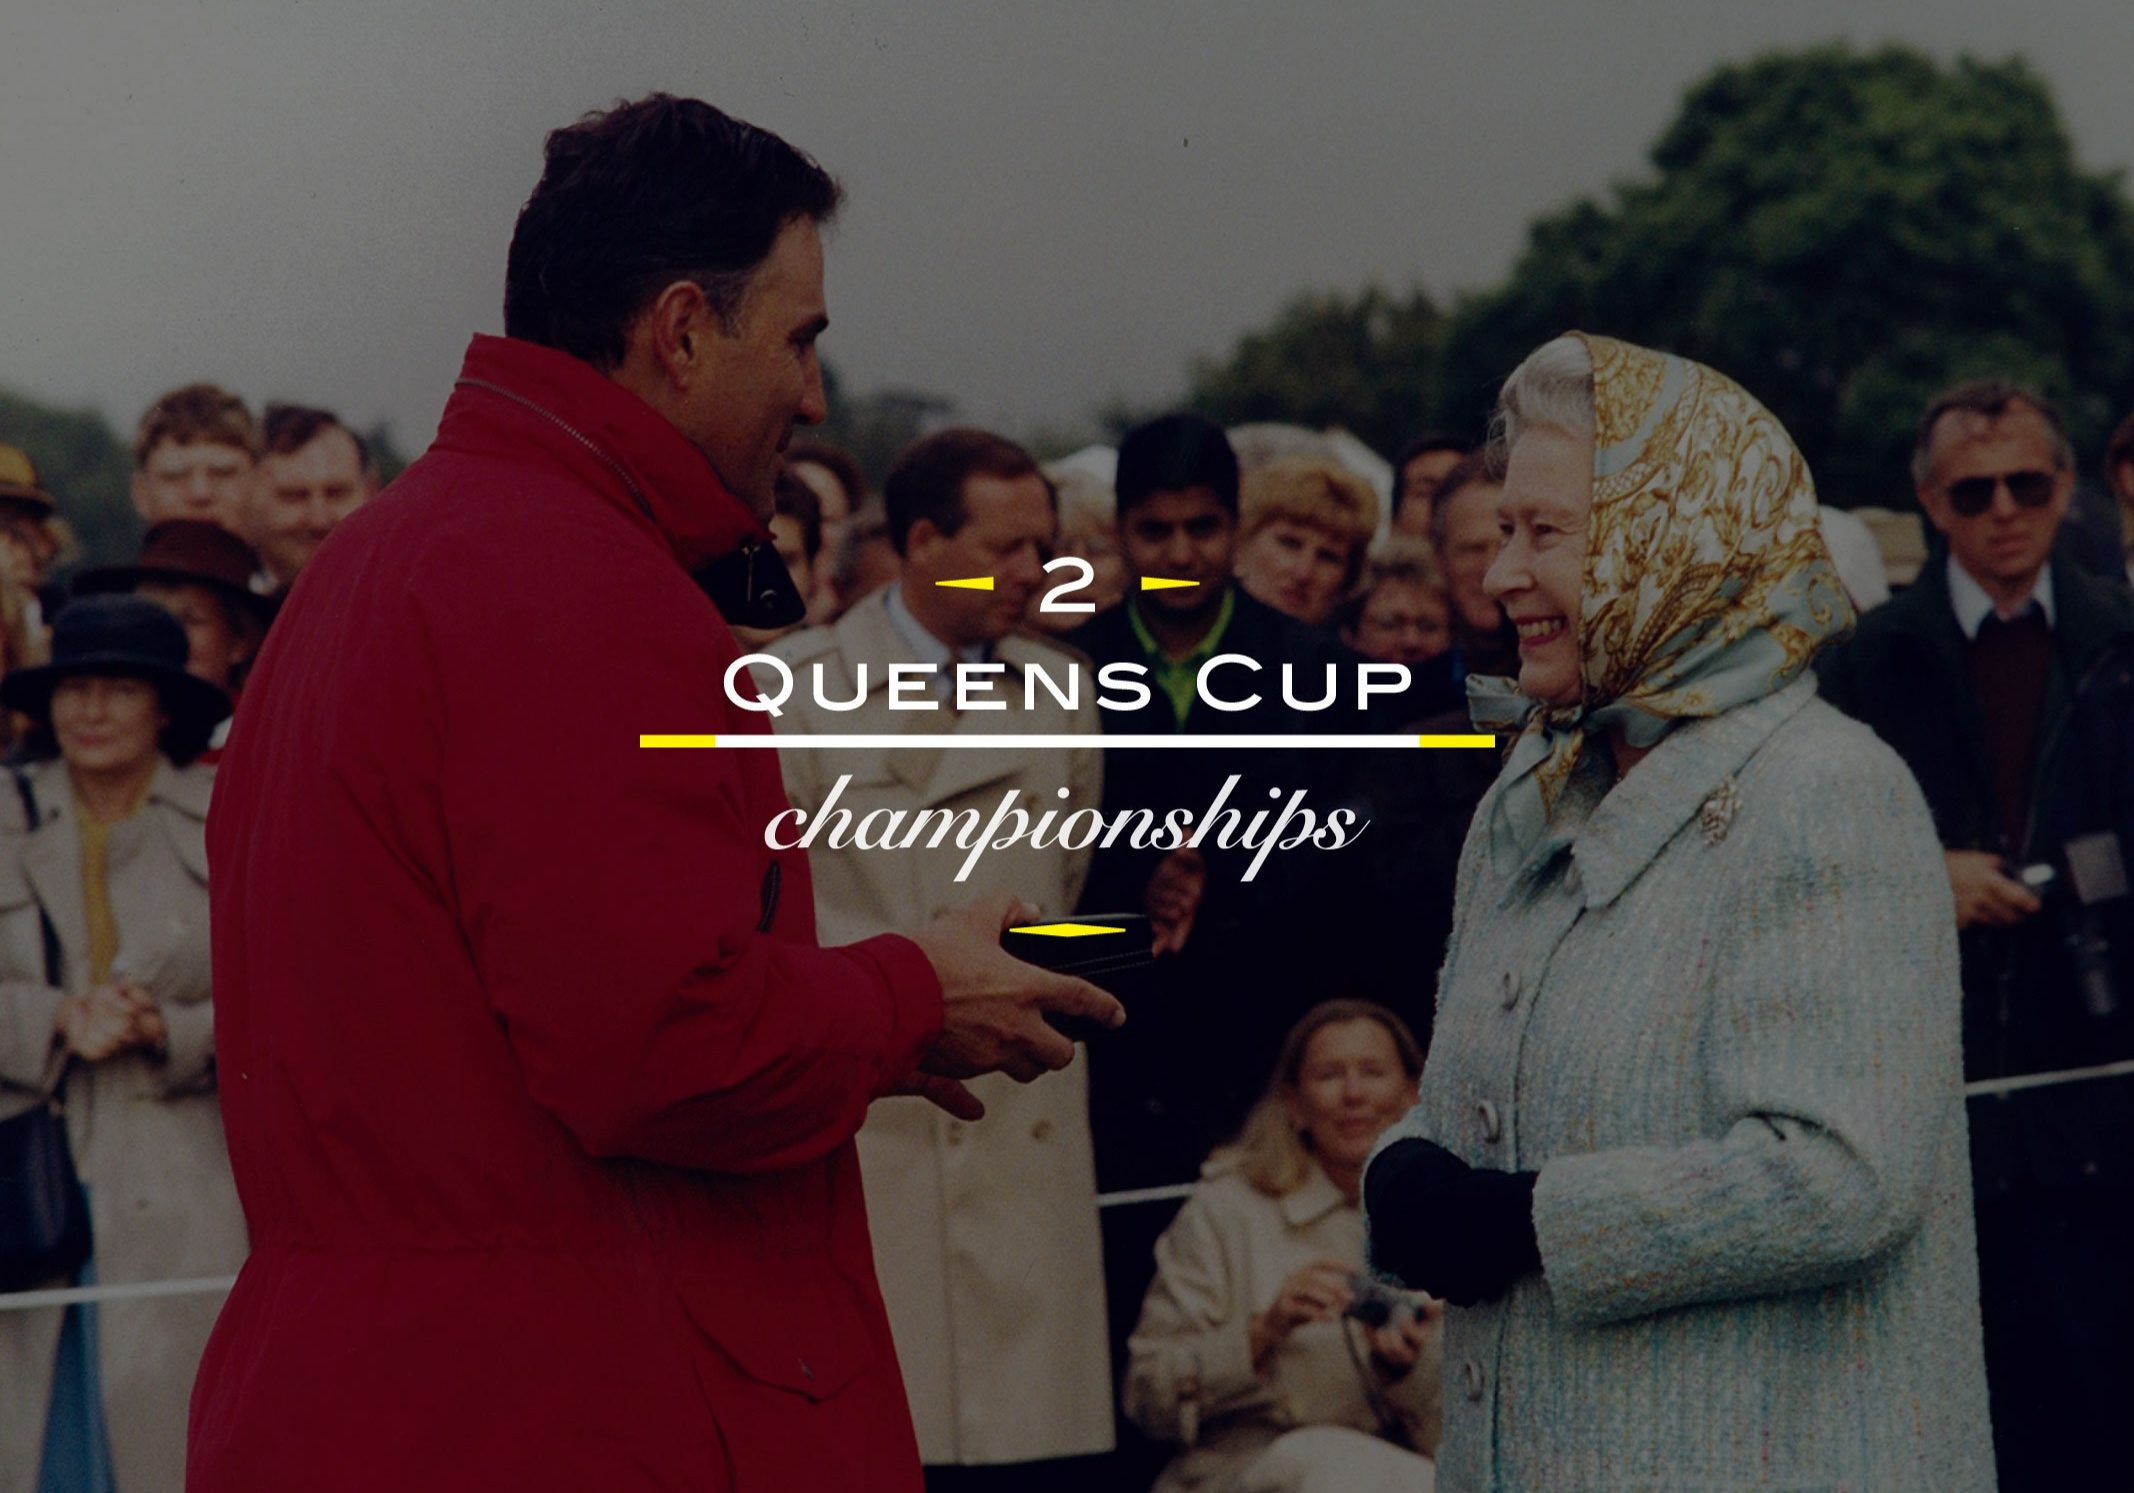 HER MAJESTY THE QUEEN'S CUP